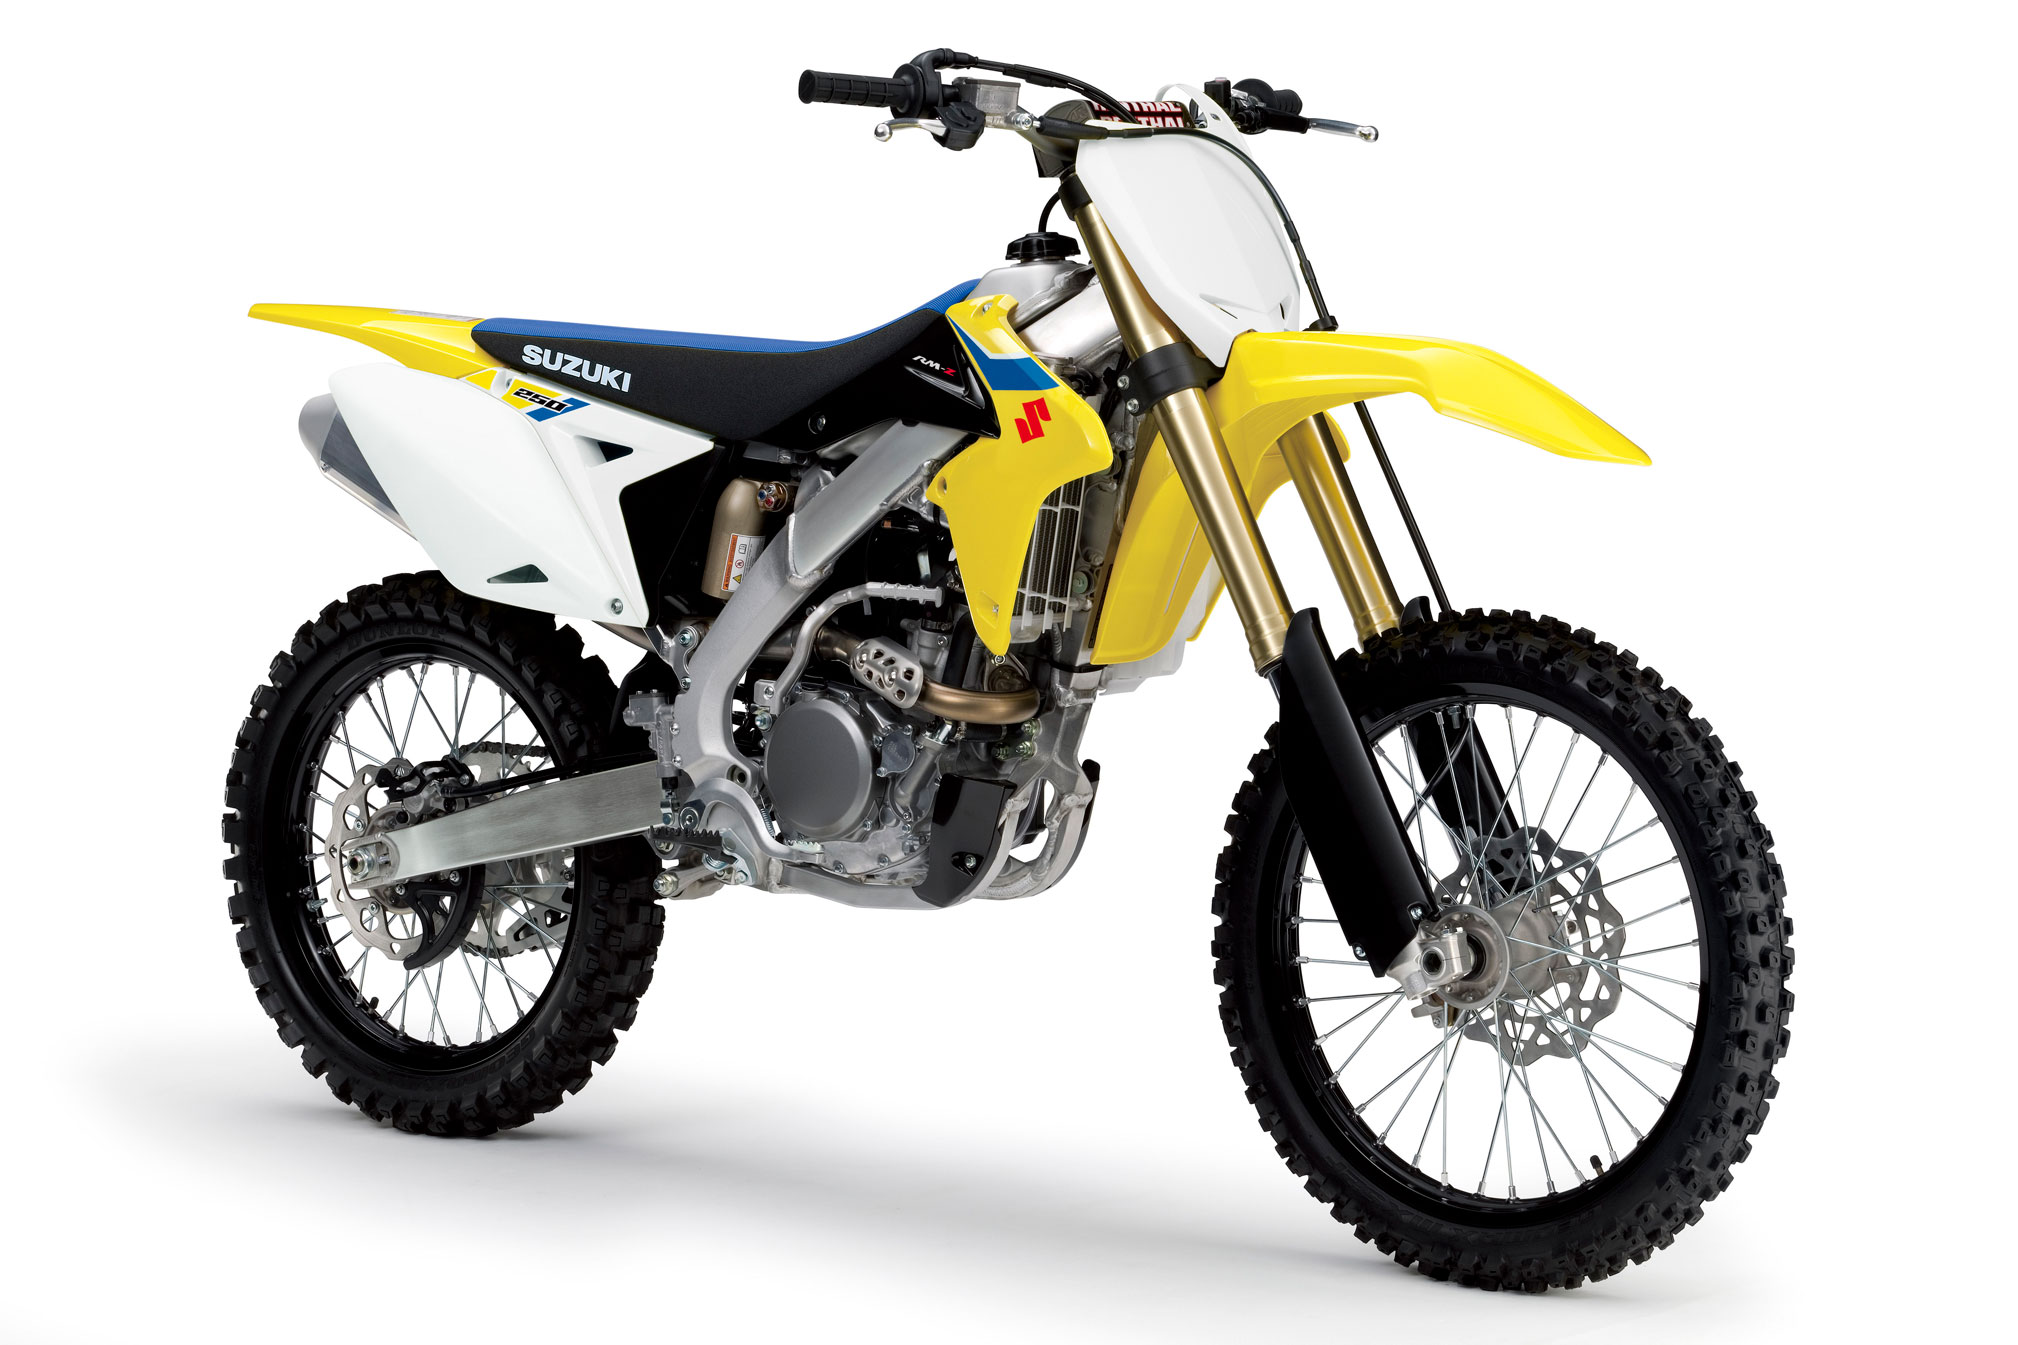 2018 suzuki rm z250 review totalmotorcycle. Black Bedroom Furniture Sets. Home Design Ideas